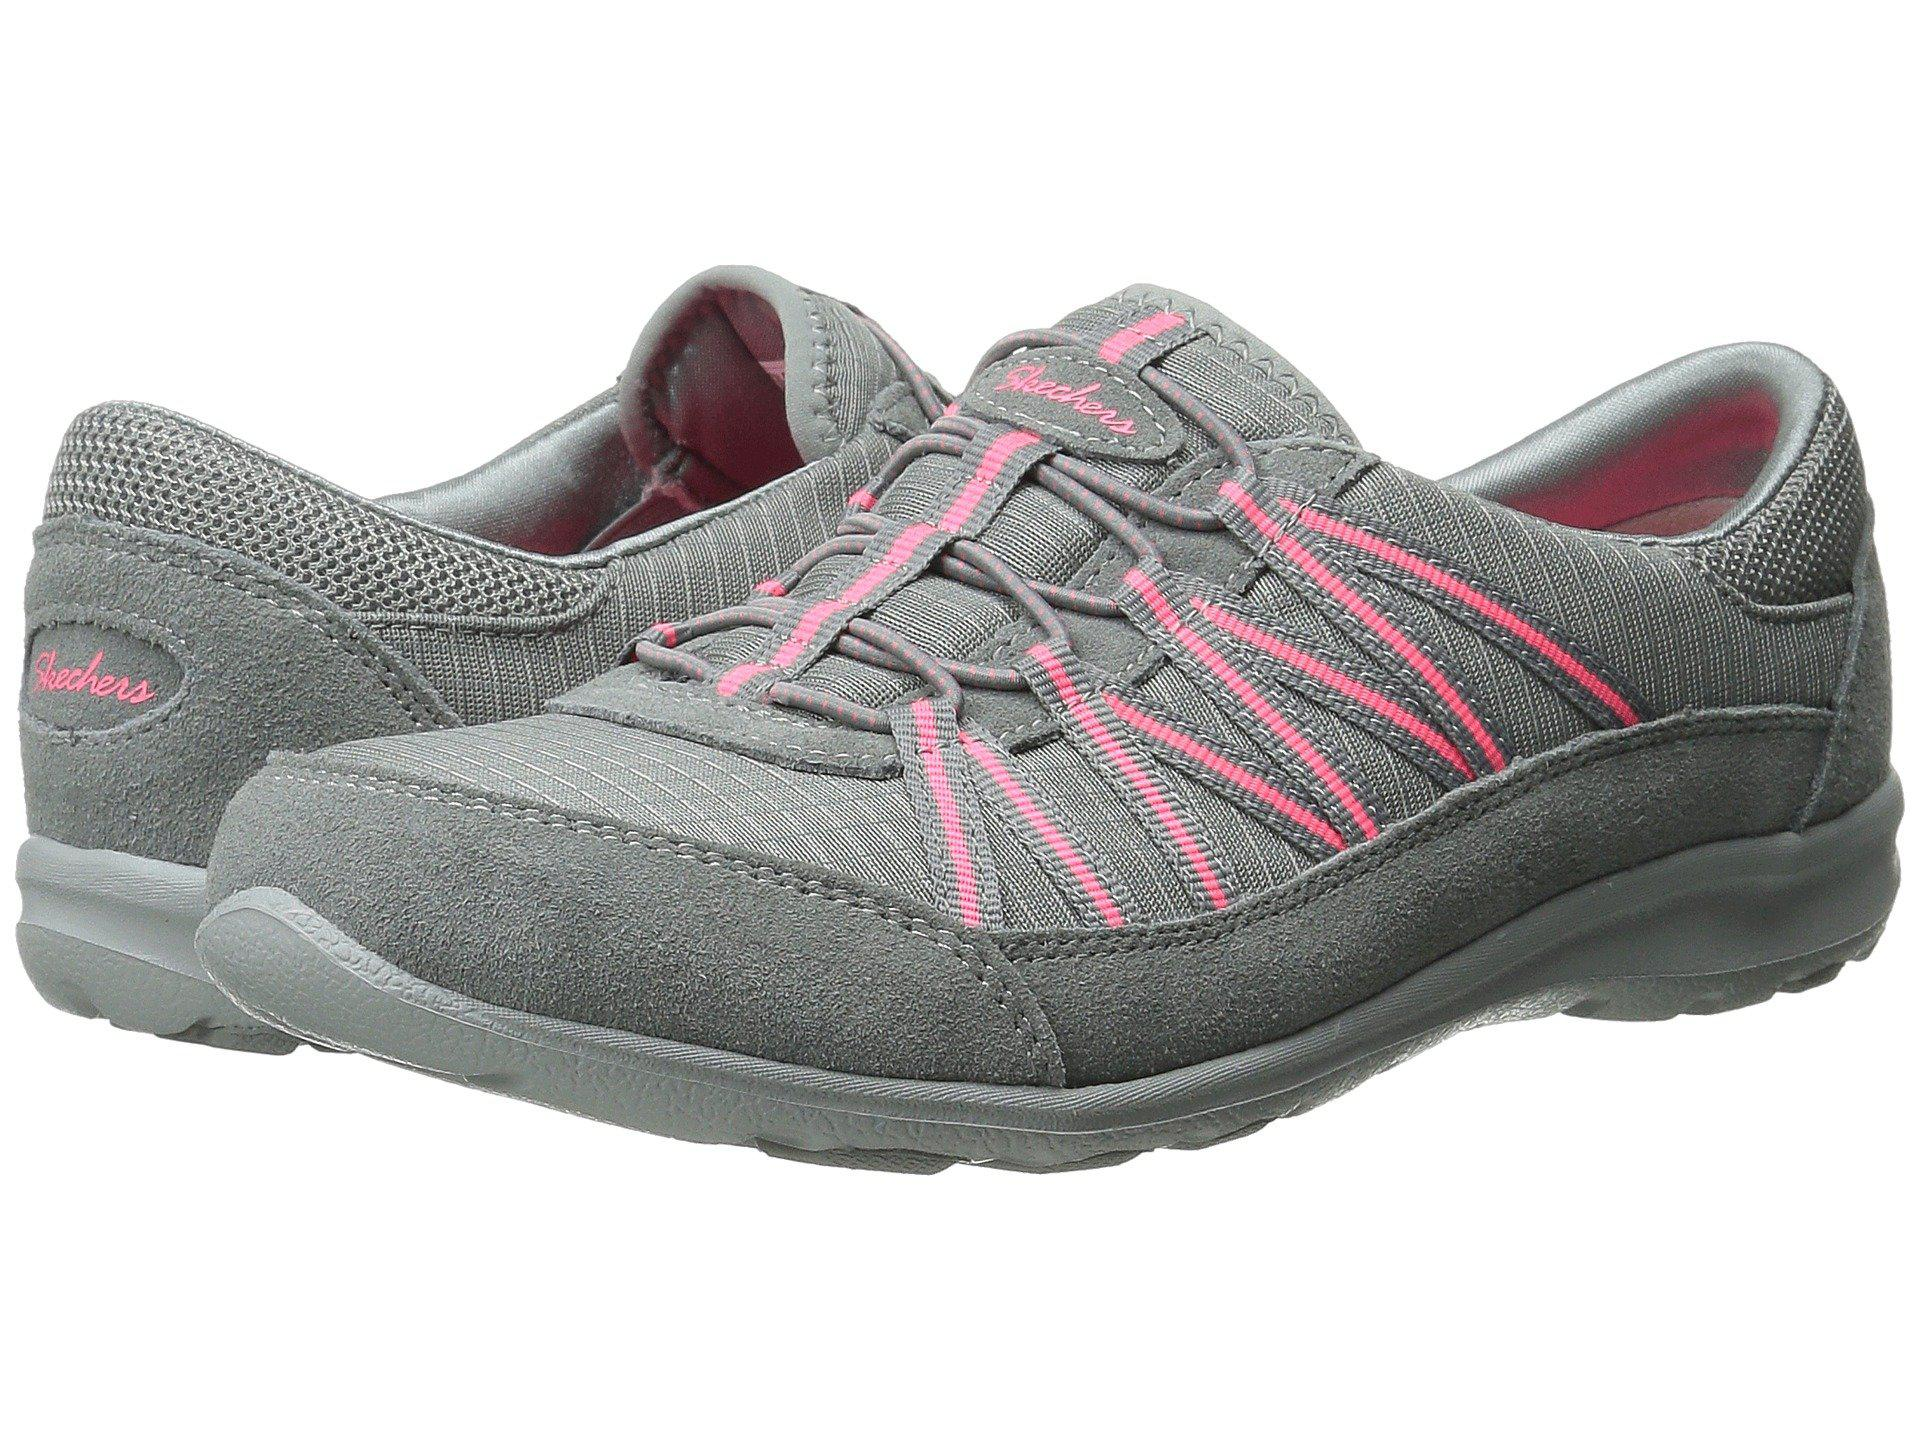 c3eaee3568cd Lyst - Skechers Dreamchaser - Romantic Trail in Gray